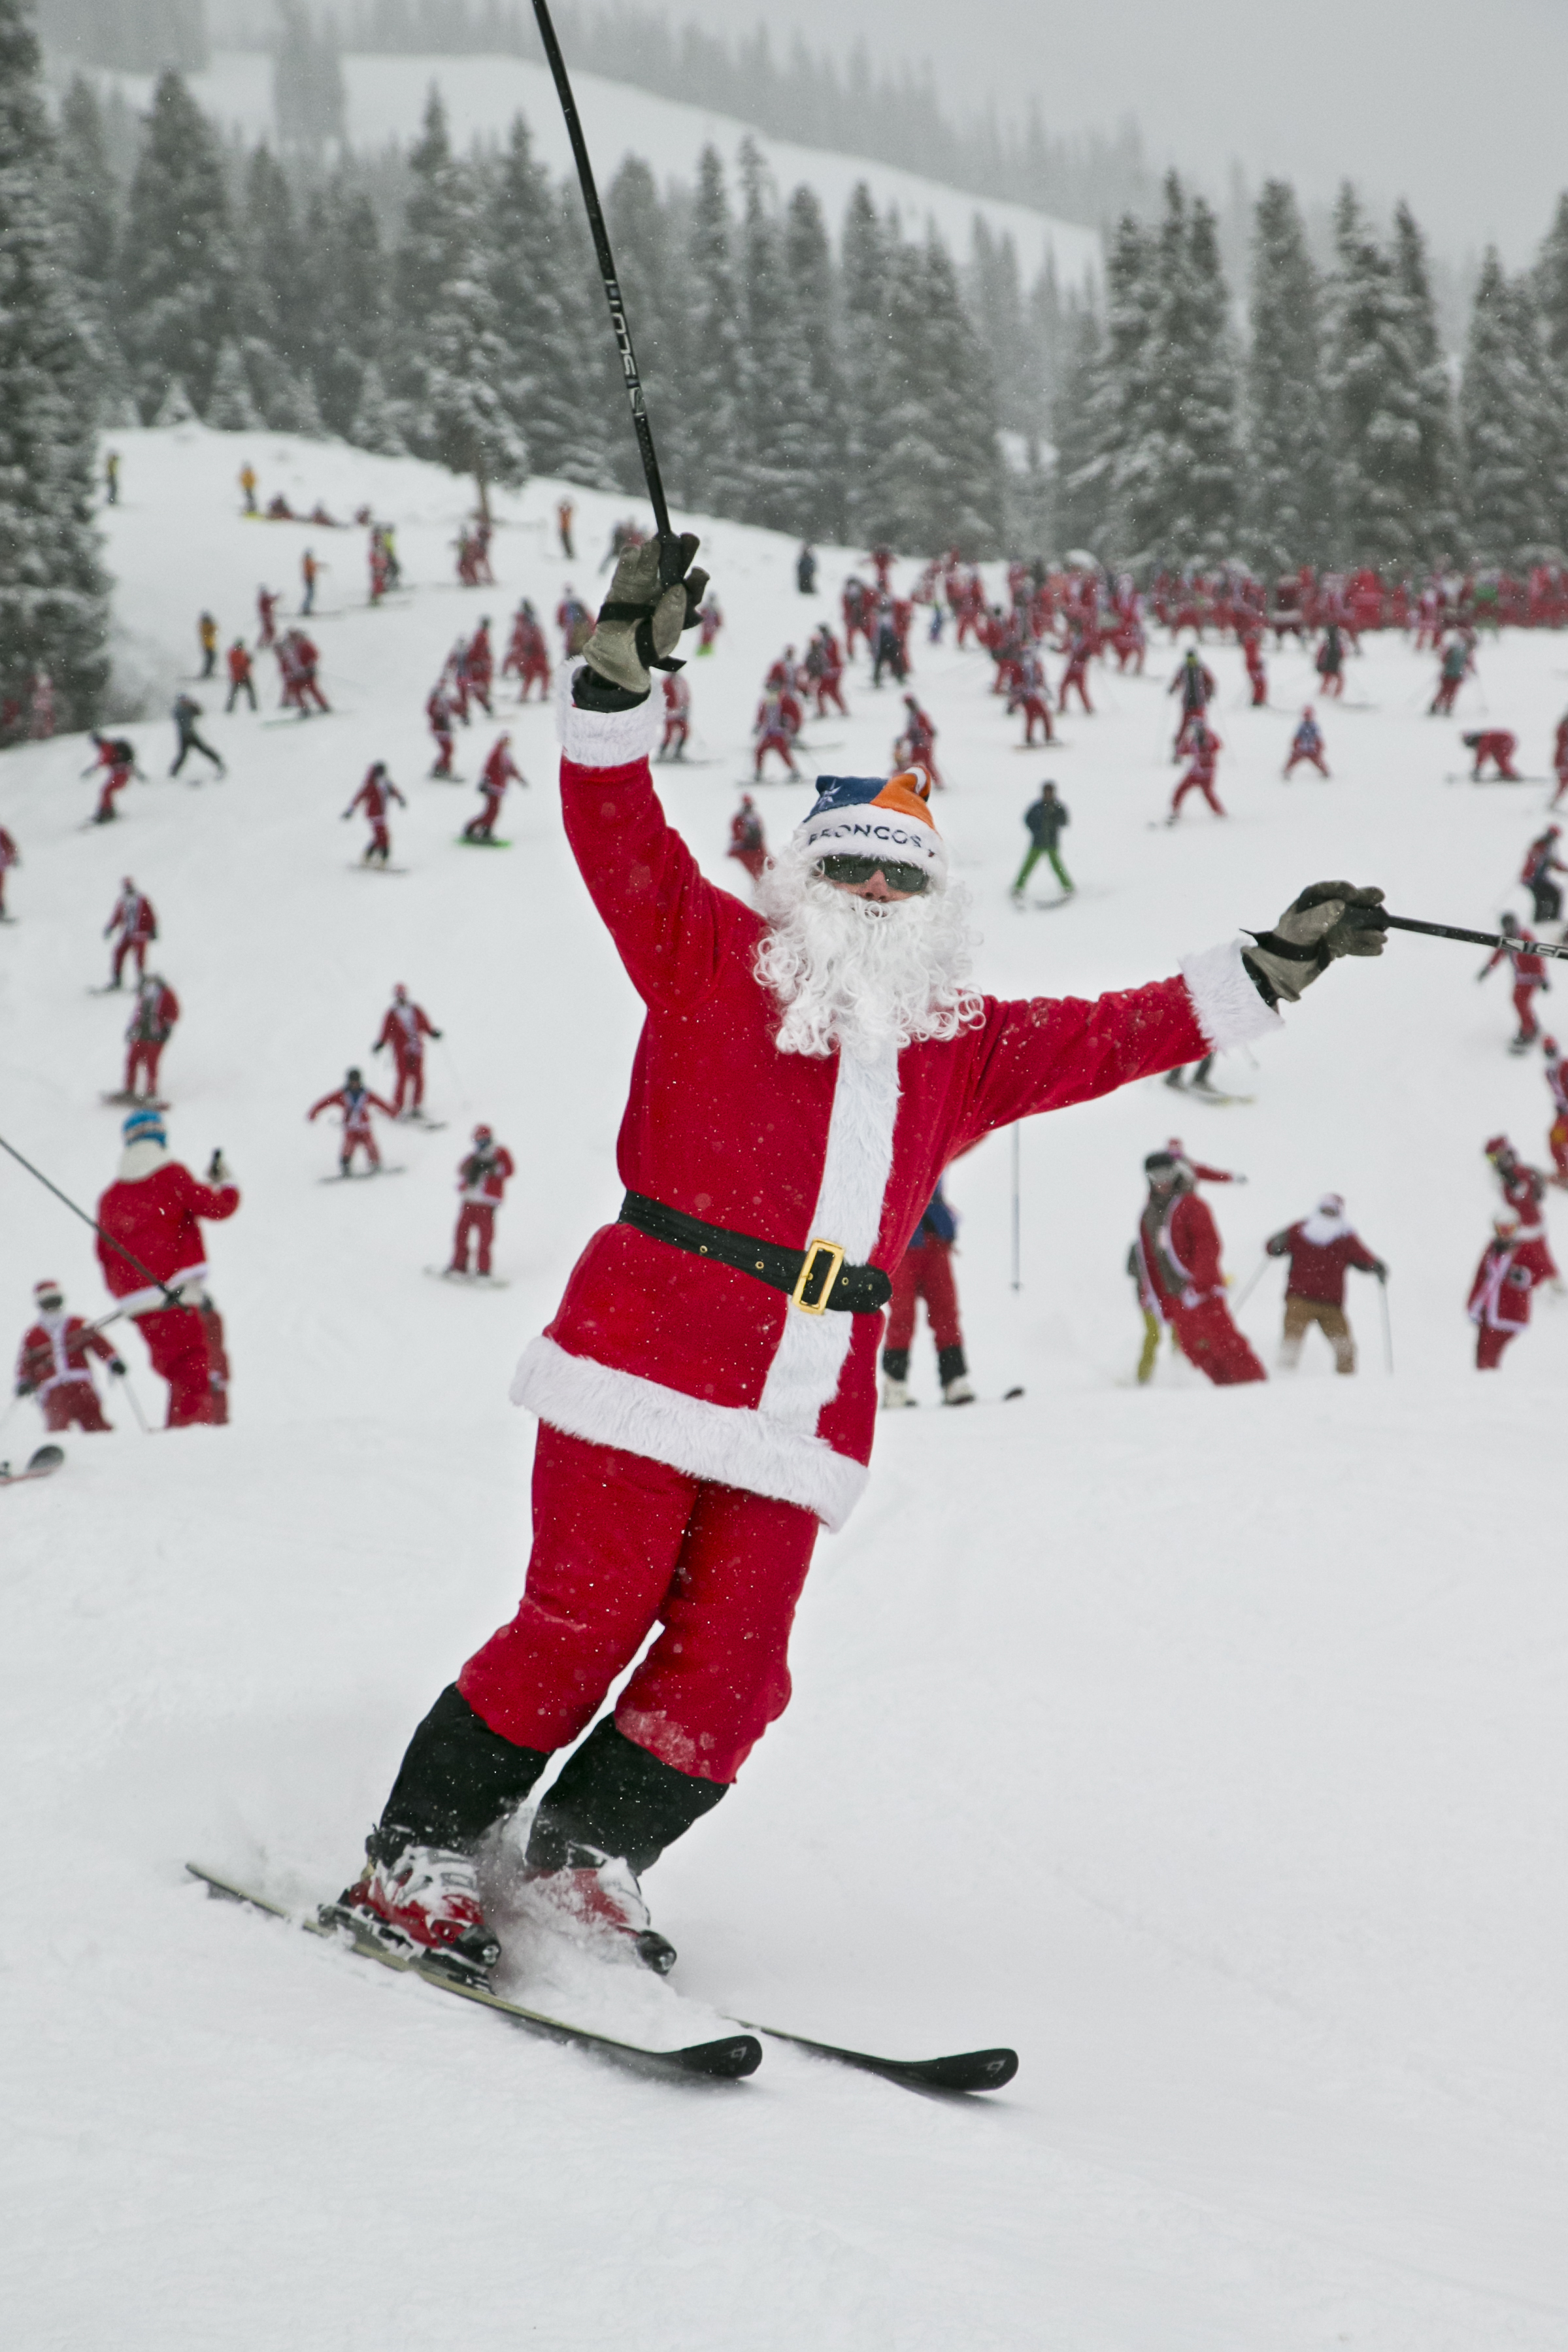 Santa skiing at CBMR on Sat., Dec. 12, 2015. A total of 827 Santas were recorded in this years count.  (credit: Nathan Bilow)